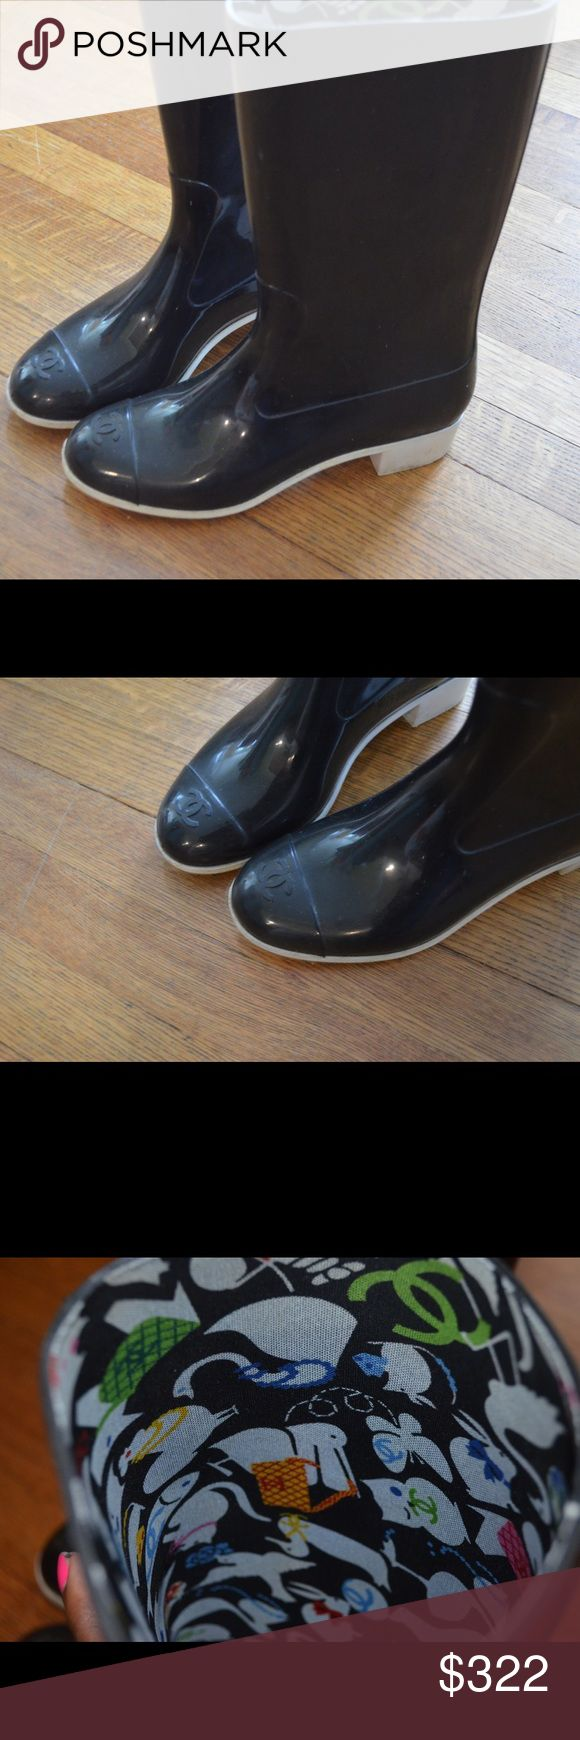 Chanel Wellington Boots Size 8 Black rubber, white bottoms THESE HAVE BEEN WORN CHANEL Shoes Winter & Rain Boots